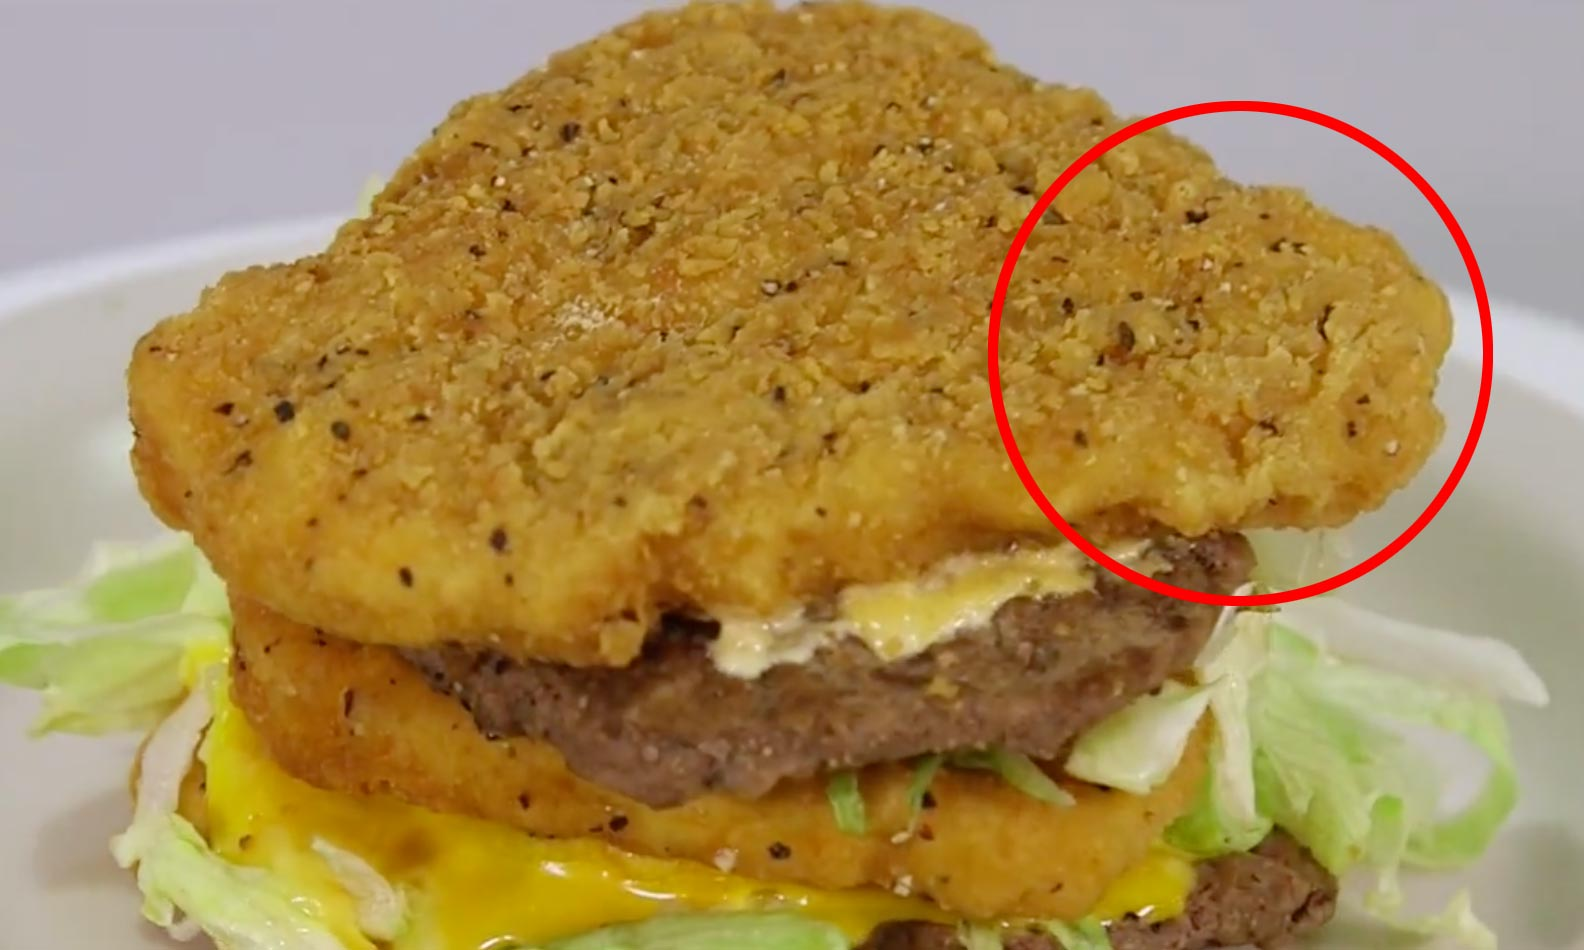 WATCH: You can order a BigMac and replace the buns with Chicken Fillet